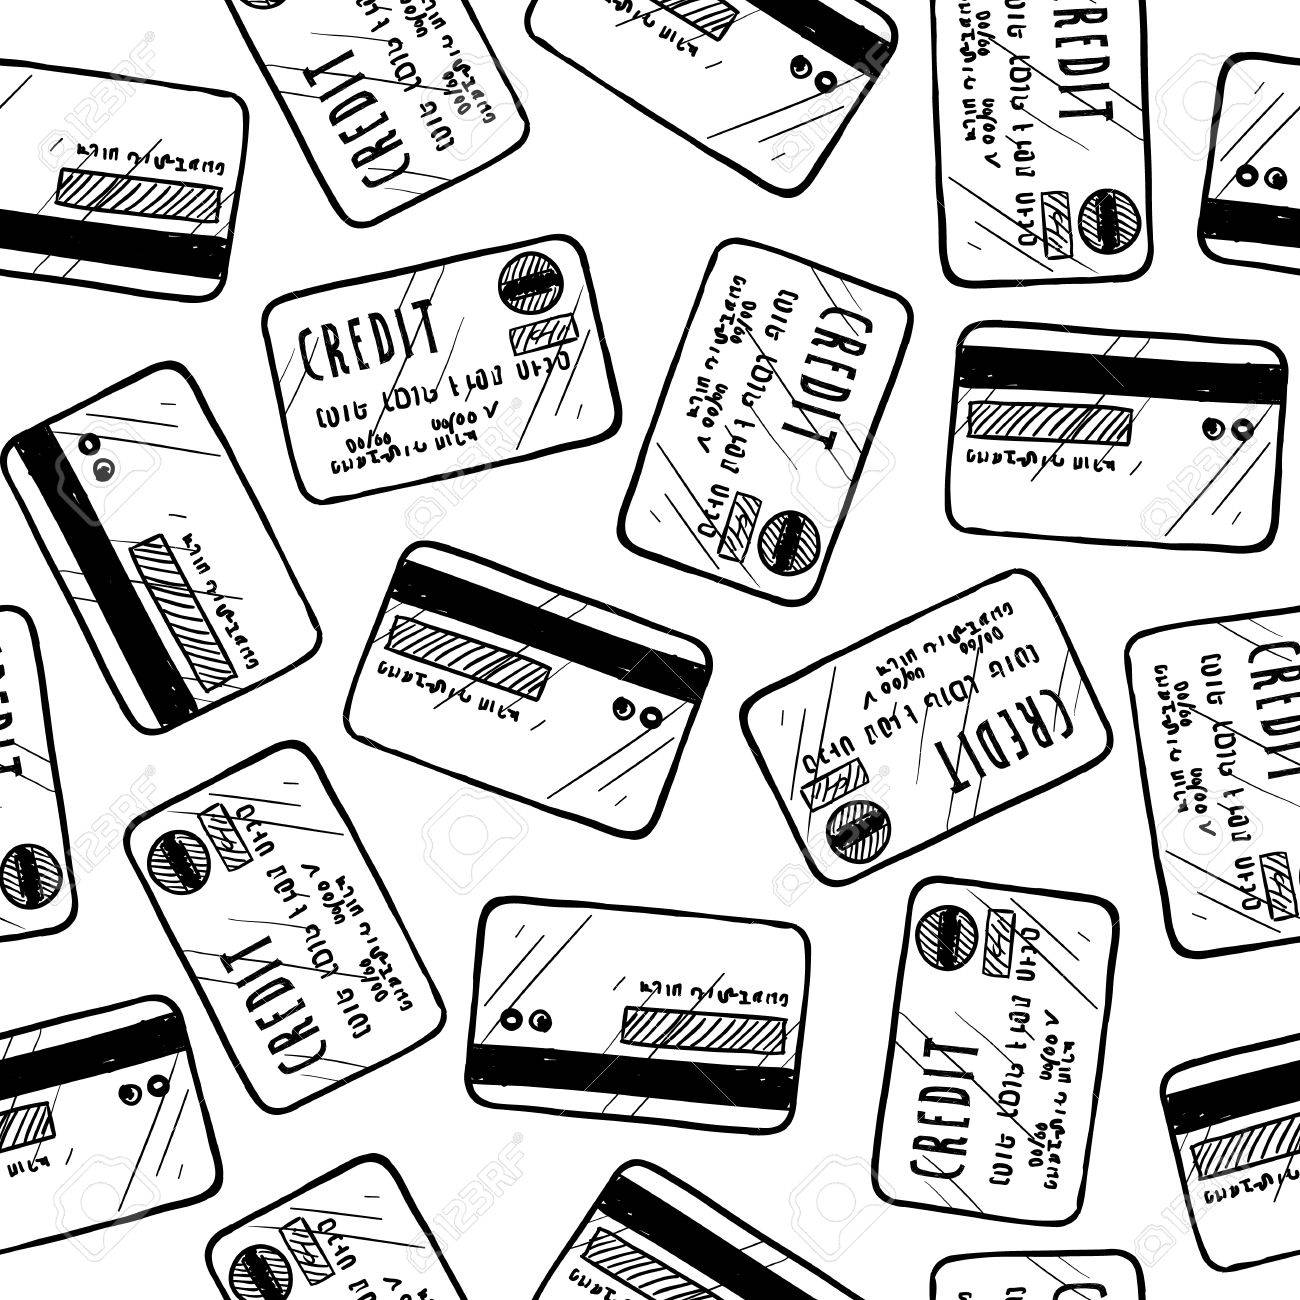 Doodle style credit card seamless vector background ready to be tiled Stock Photo - 18304216